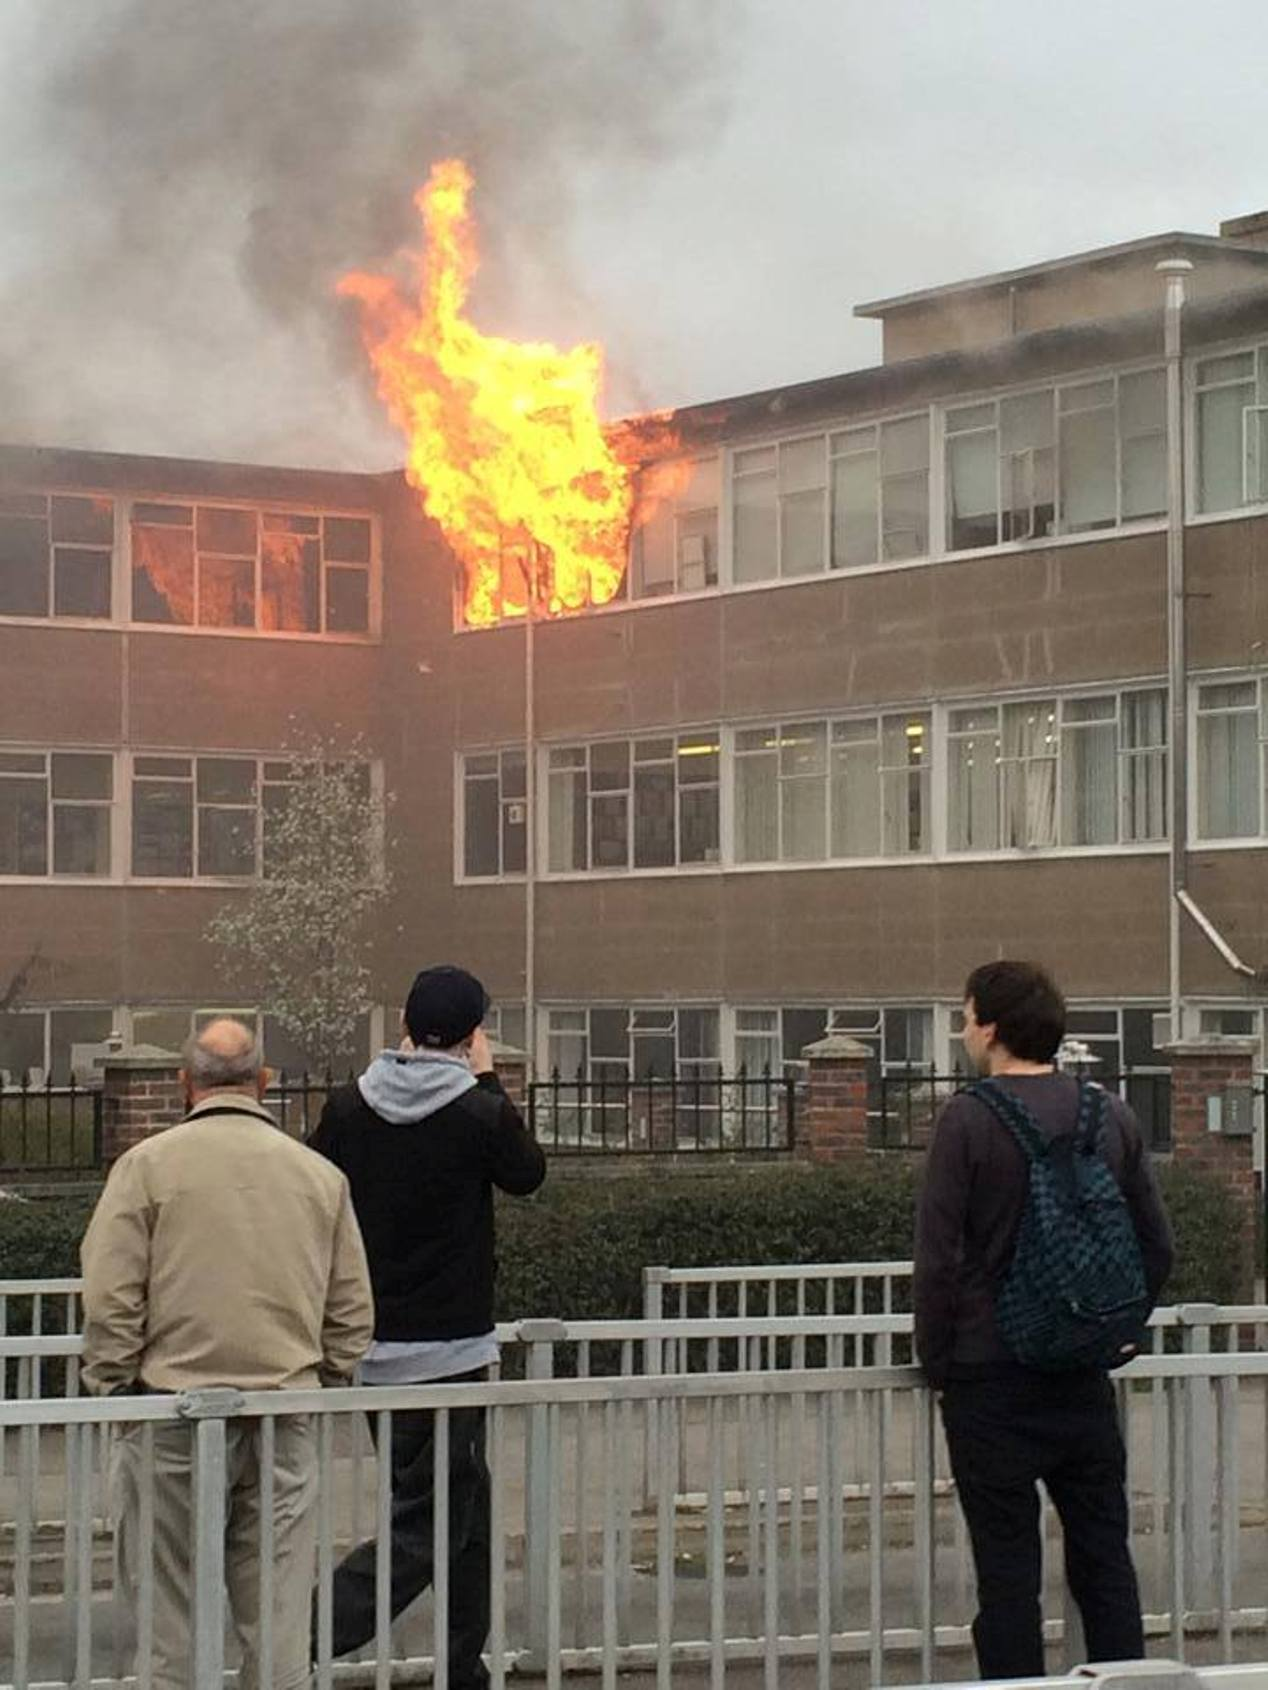 Picture of the fire at Millais School in Horsham by Alex Osuch